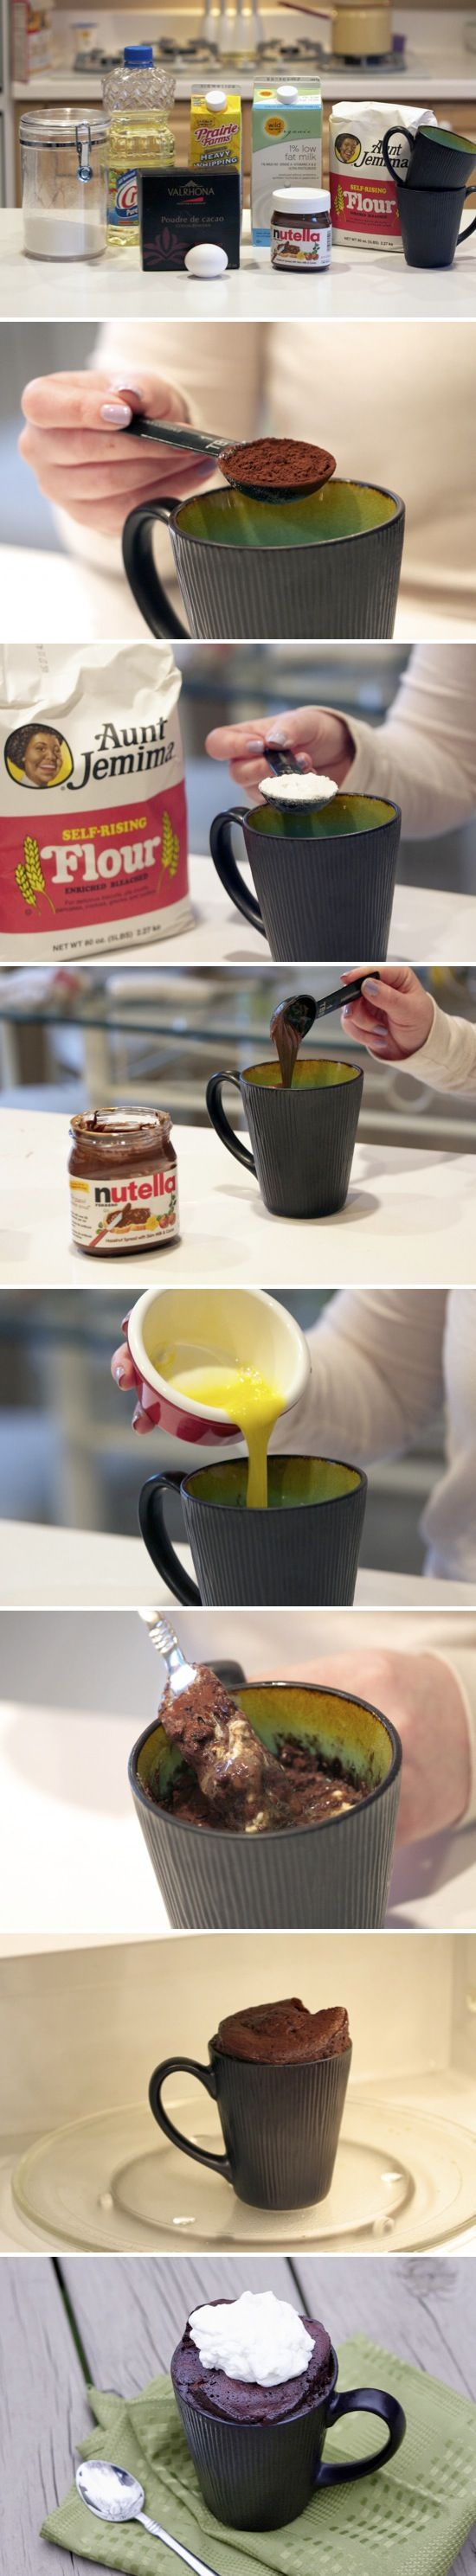 Recipes For The Cooking Challenged | Microwave Mug Nutella Cake This easy cake recipe just goes to prove that the microwave is in fact the greatest kitchen invention.